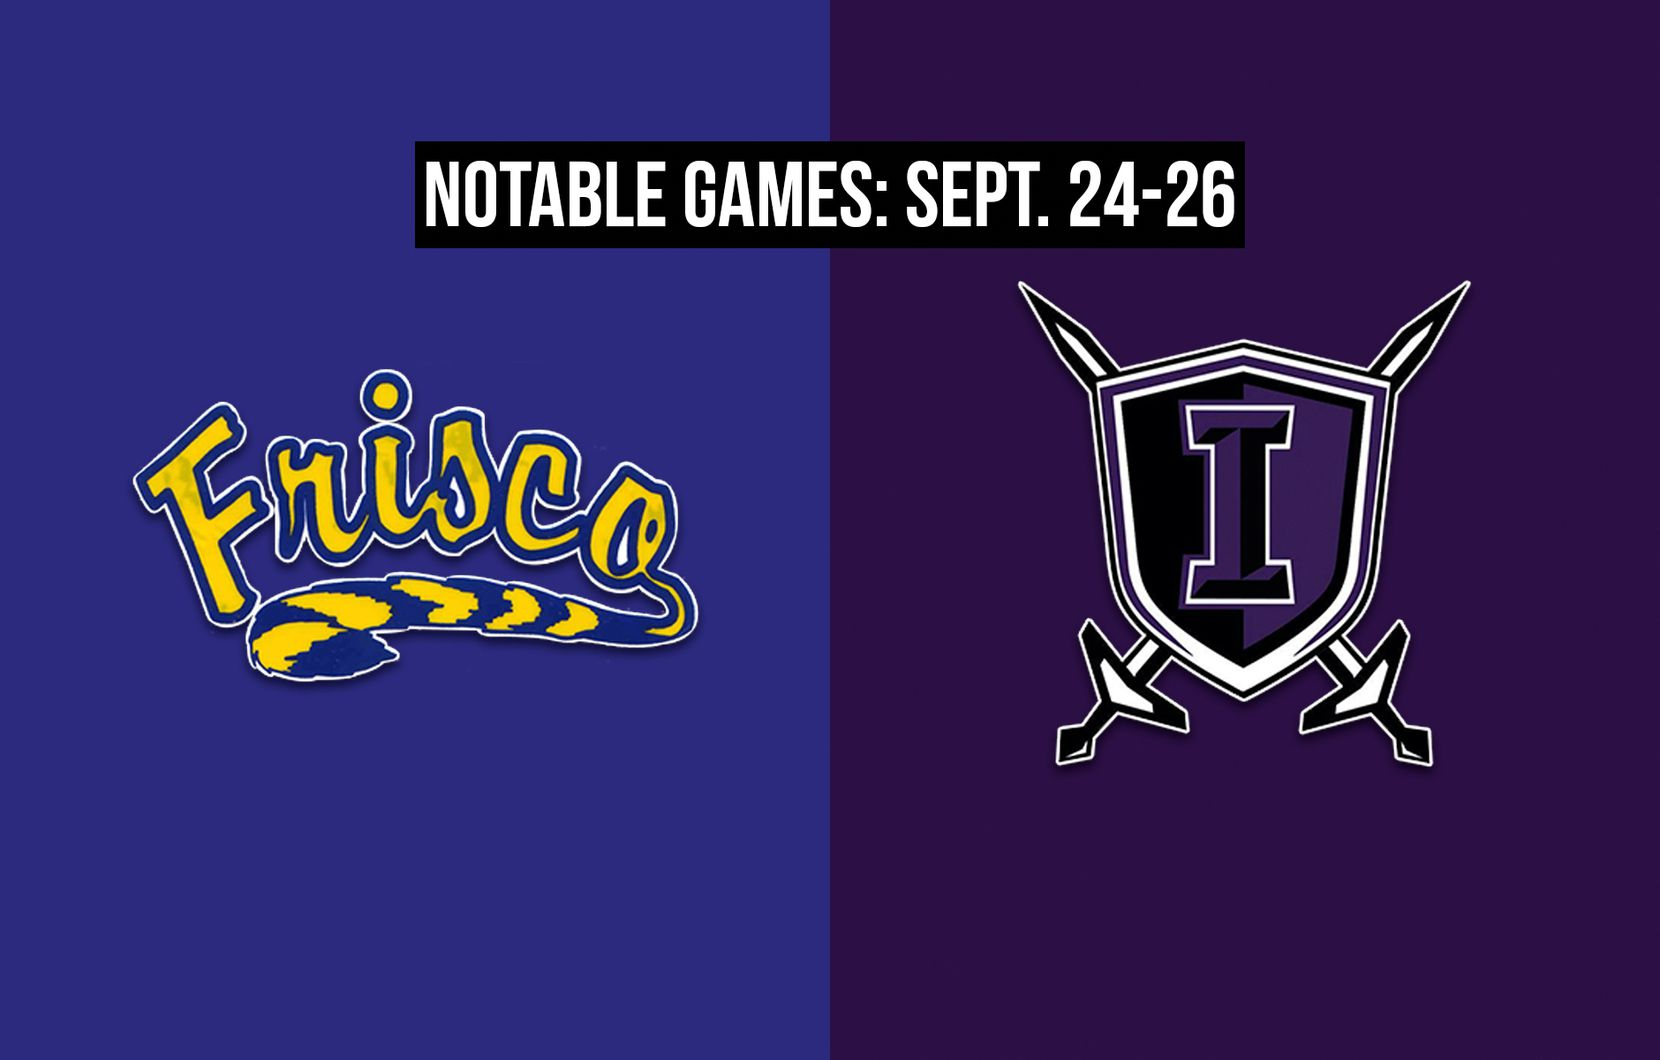 Notable games for the week of Sept. 24-26 of the 2020 season: Frisco vs. Frisco Independence.